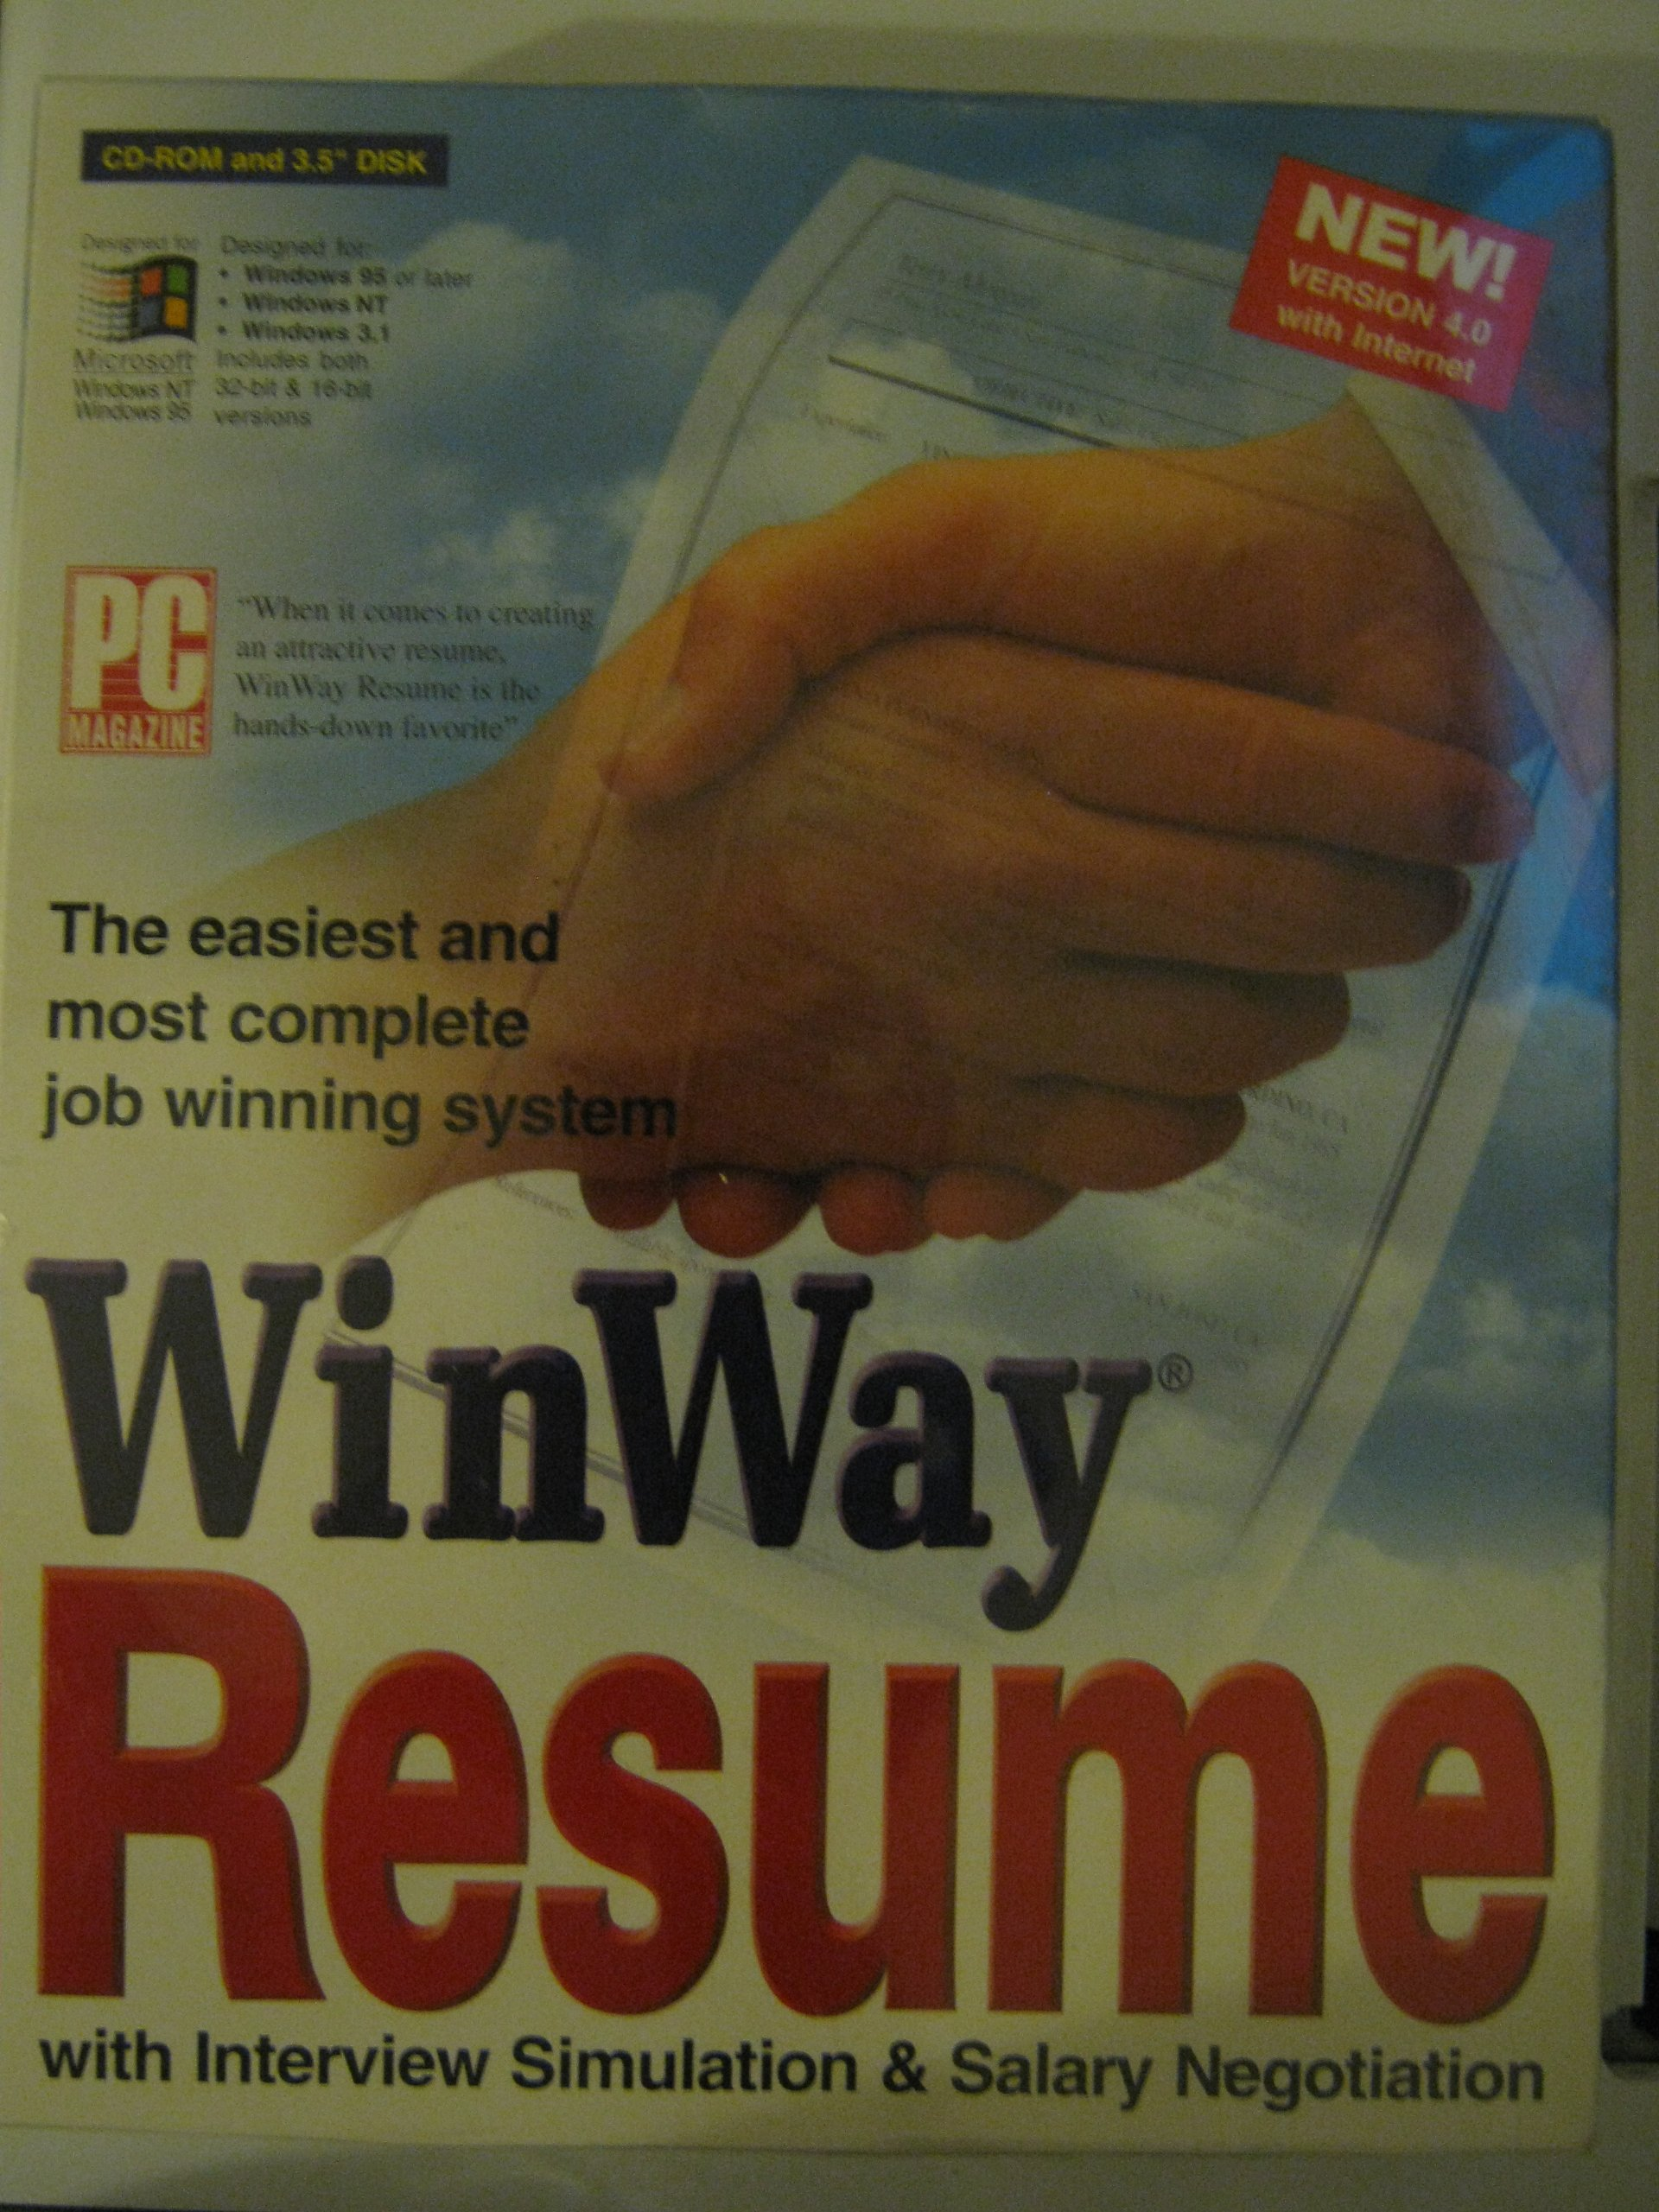 WINWAY RESUME Version 4.0 with internet by WINWAY